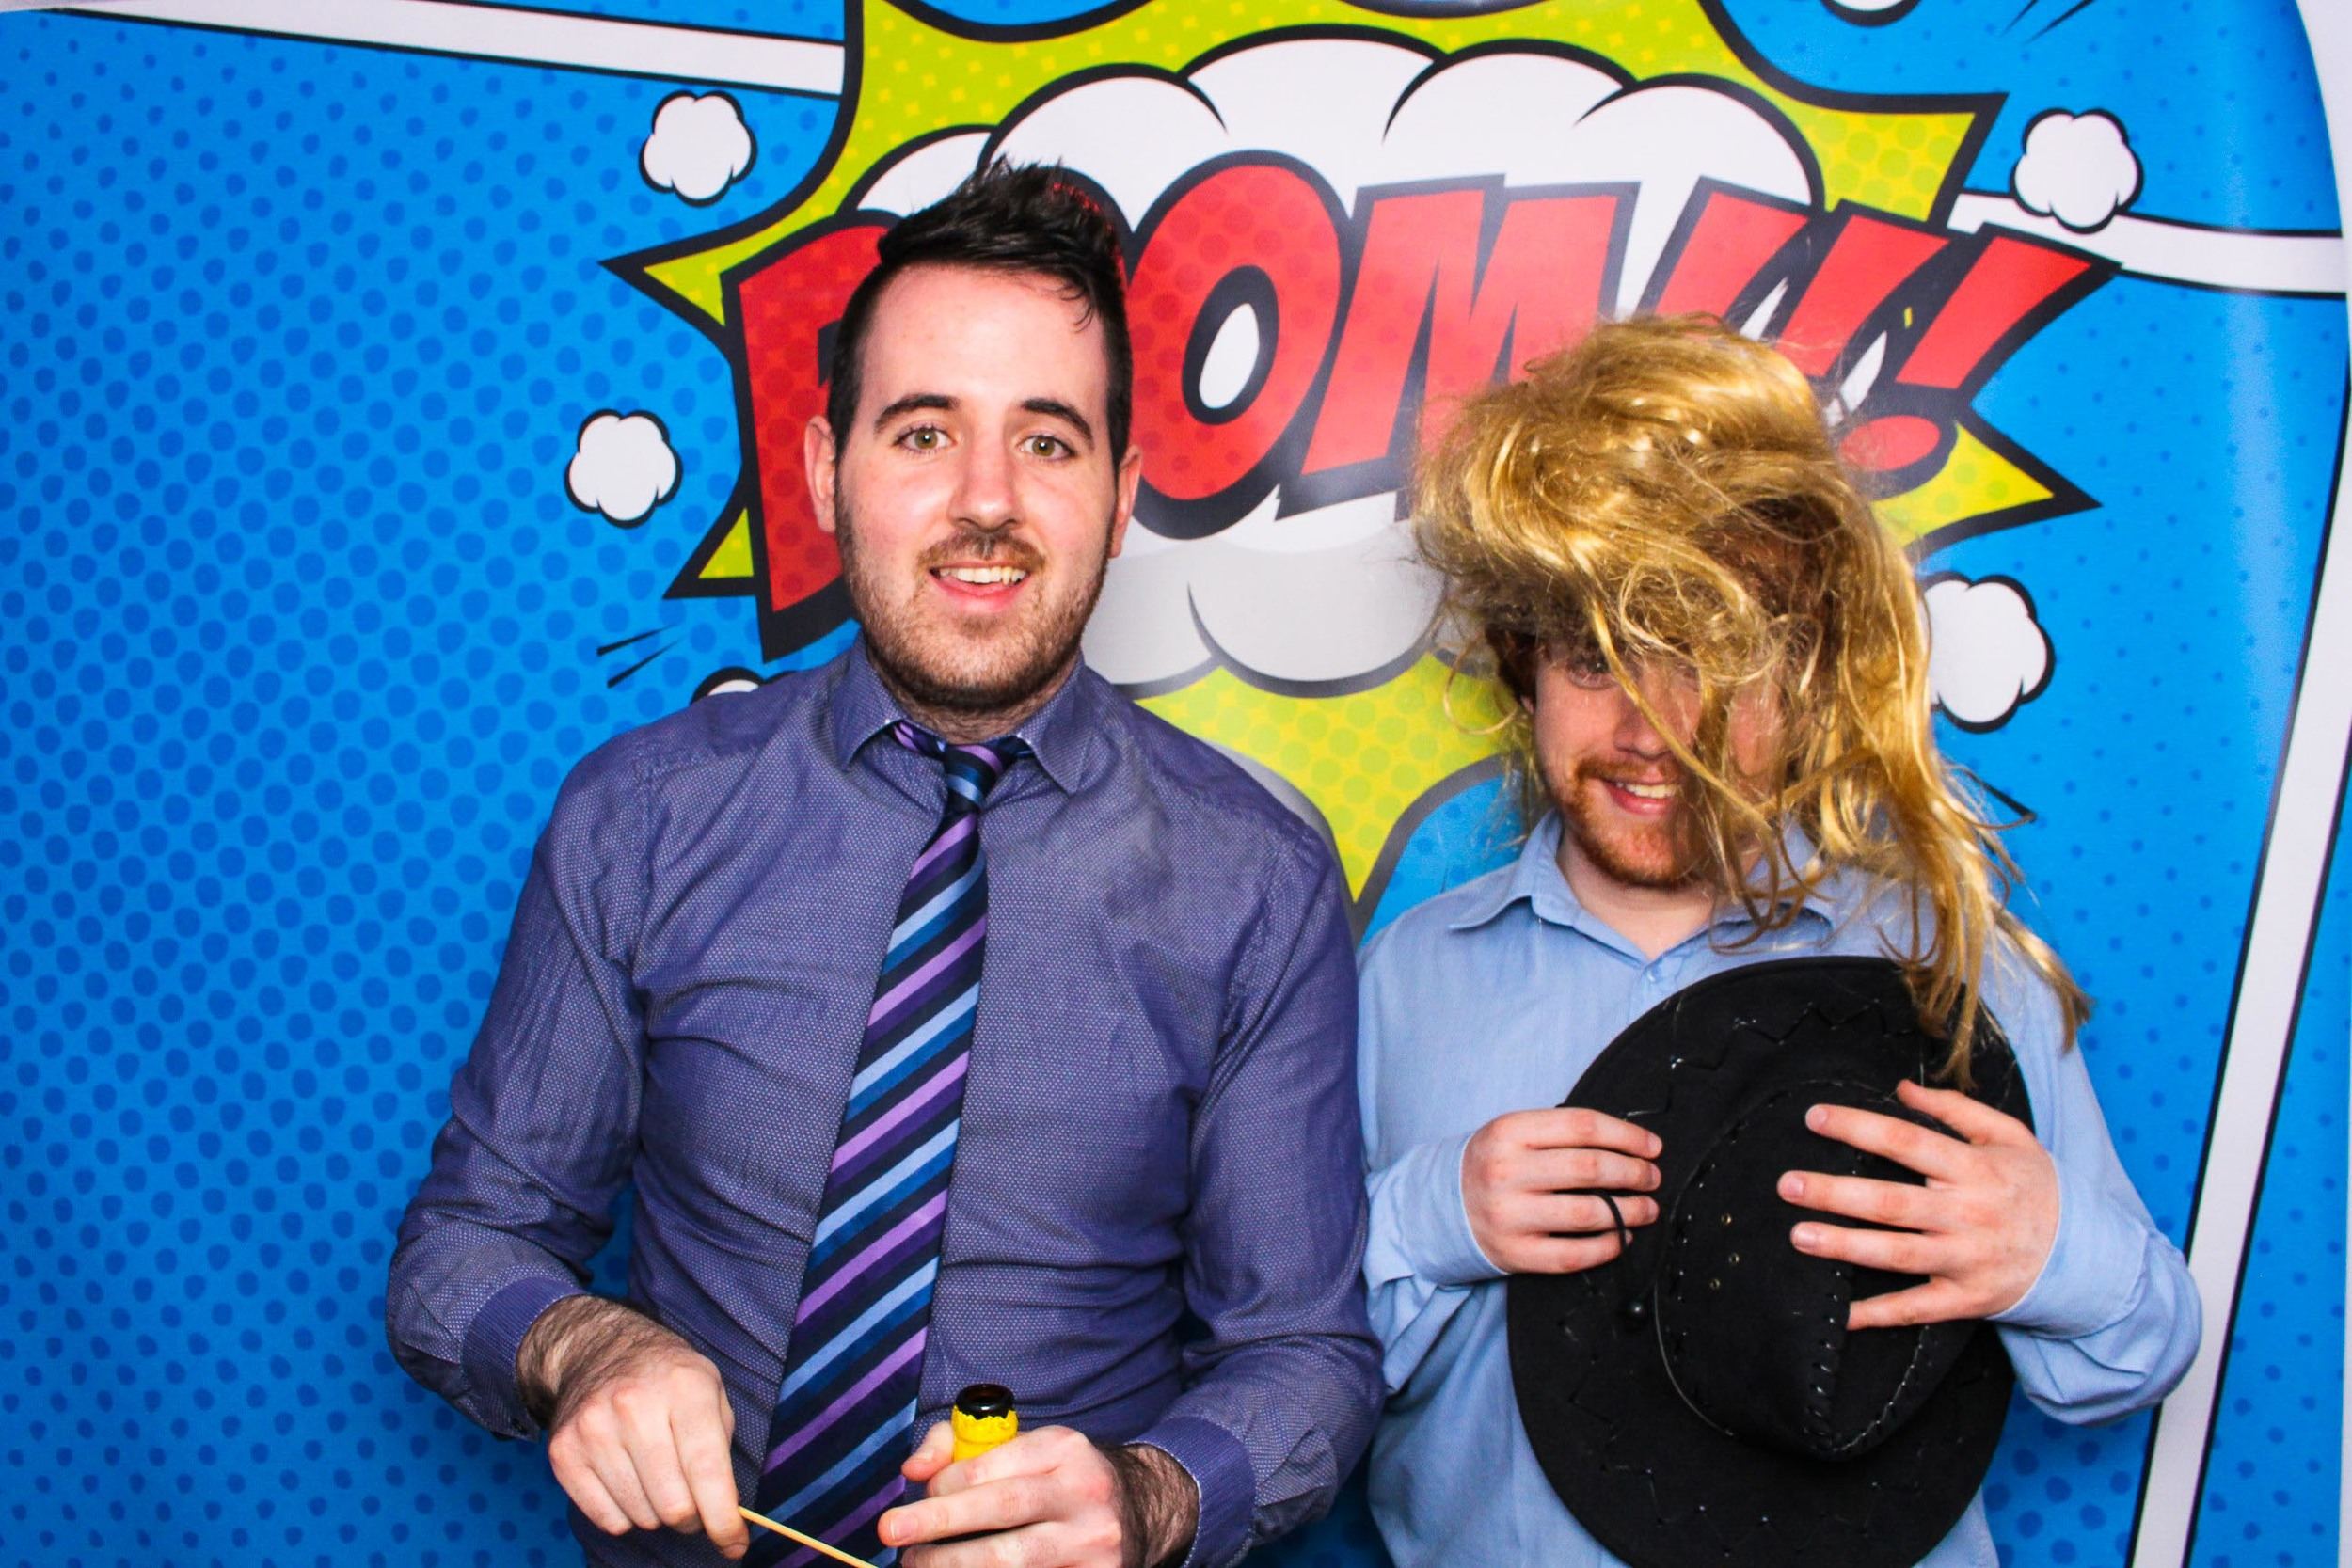 Fotoauto Photo Booth Hire - Shop Direct-340.jpg